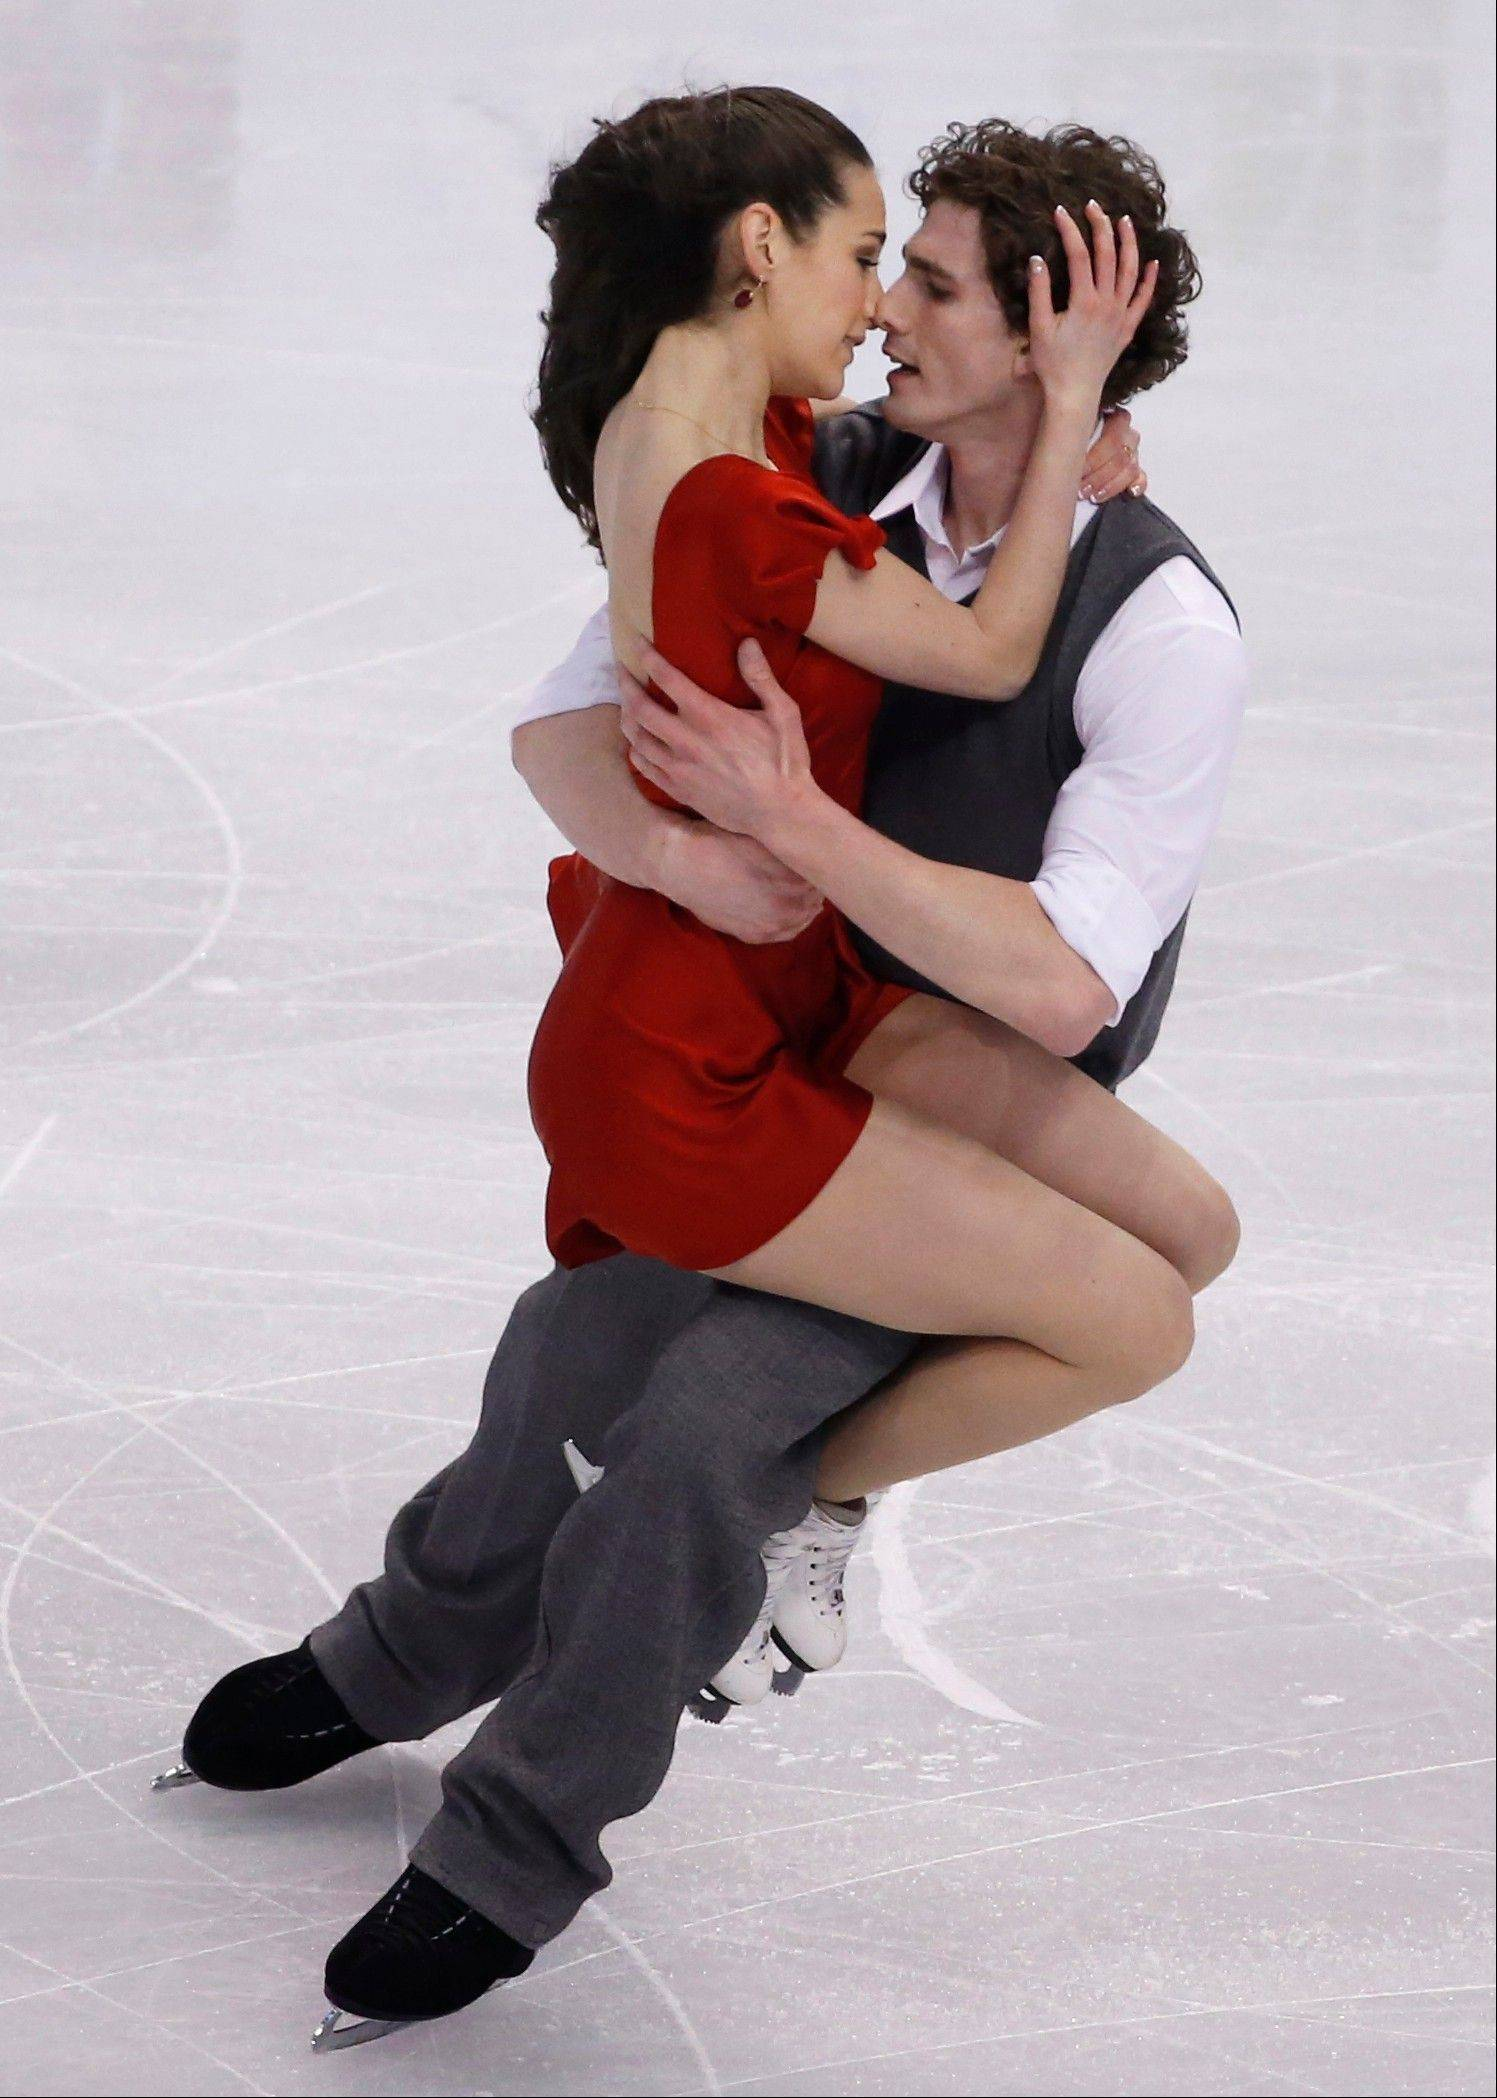 Alissandra Aronow and Collin Brubaker of Algonquin compete during the ice dance free skate at the U.S. Figure Skating Championships in Boston. They finished ninth overall.